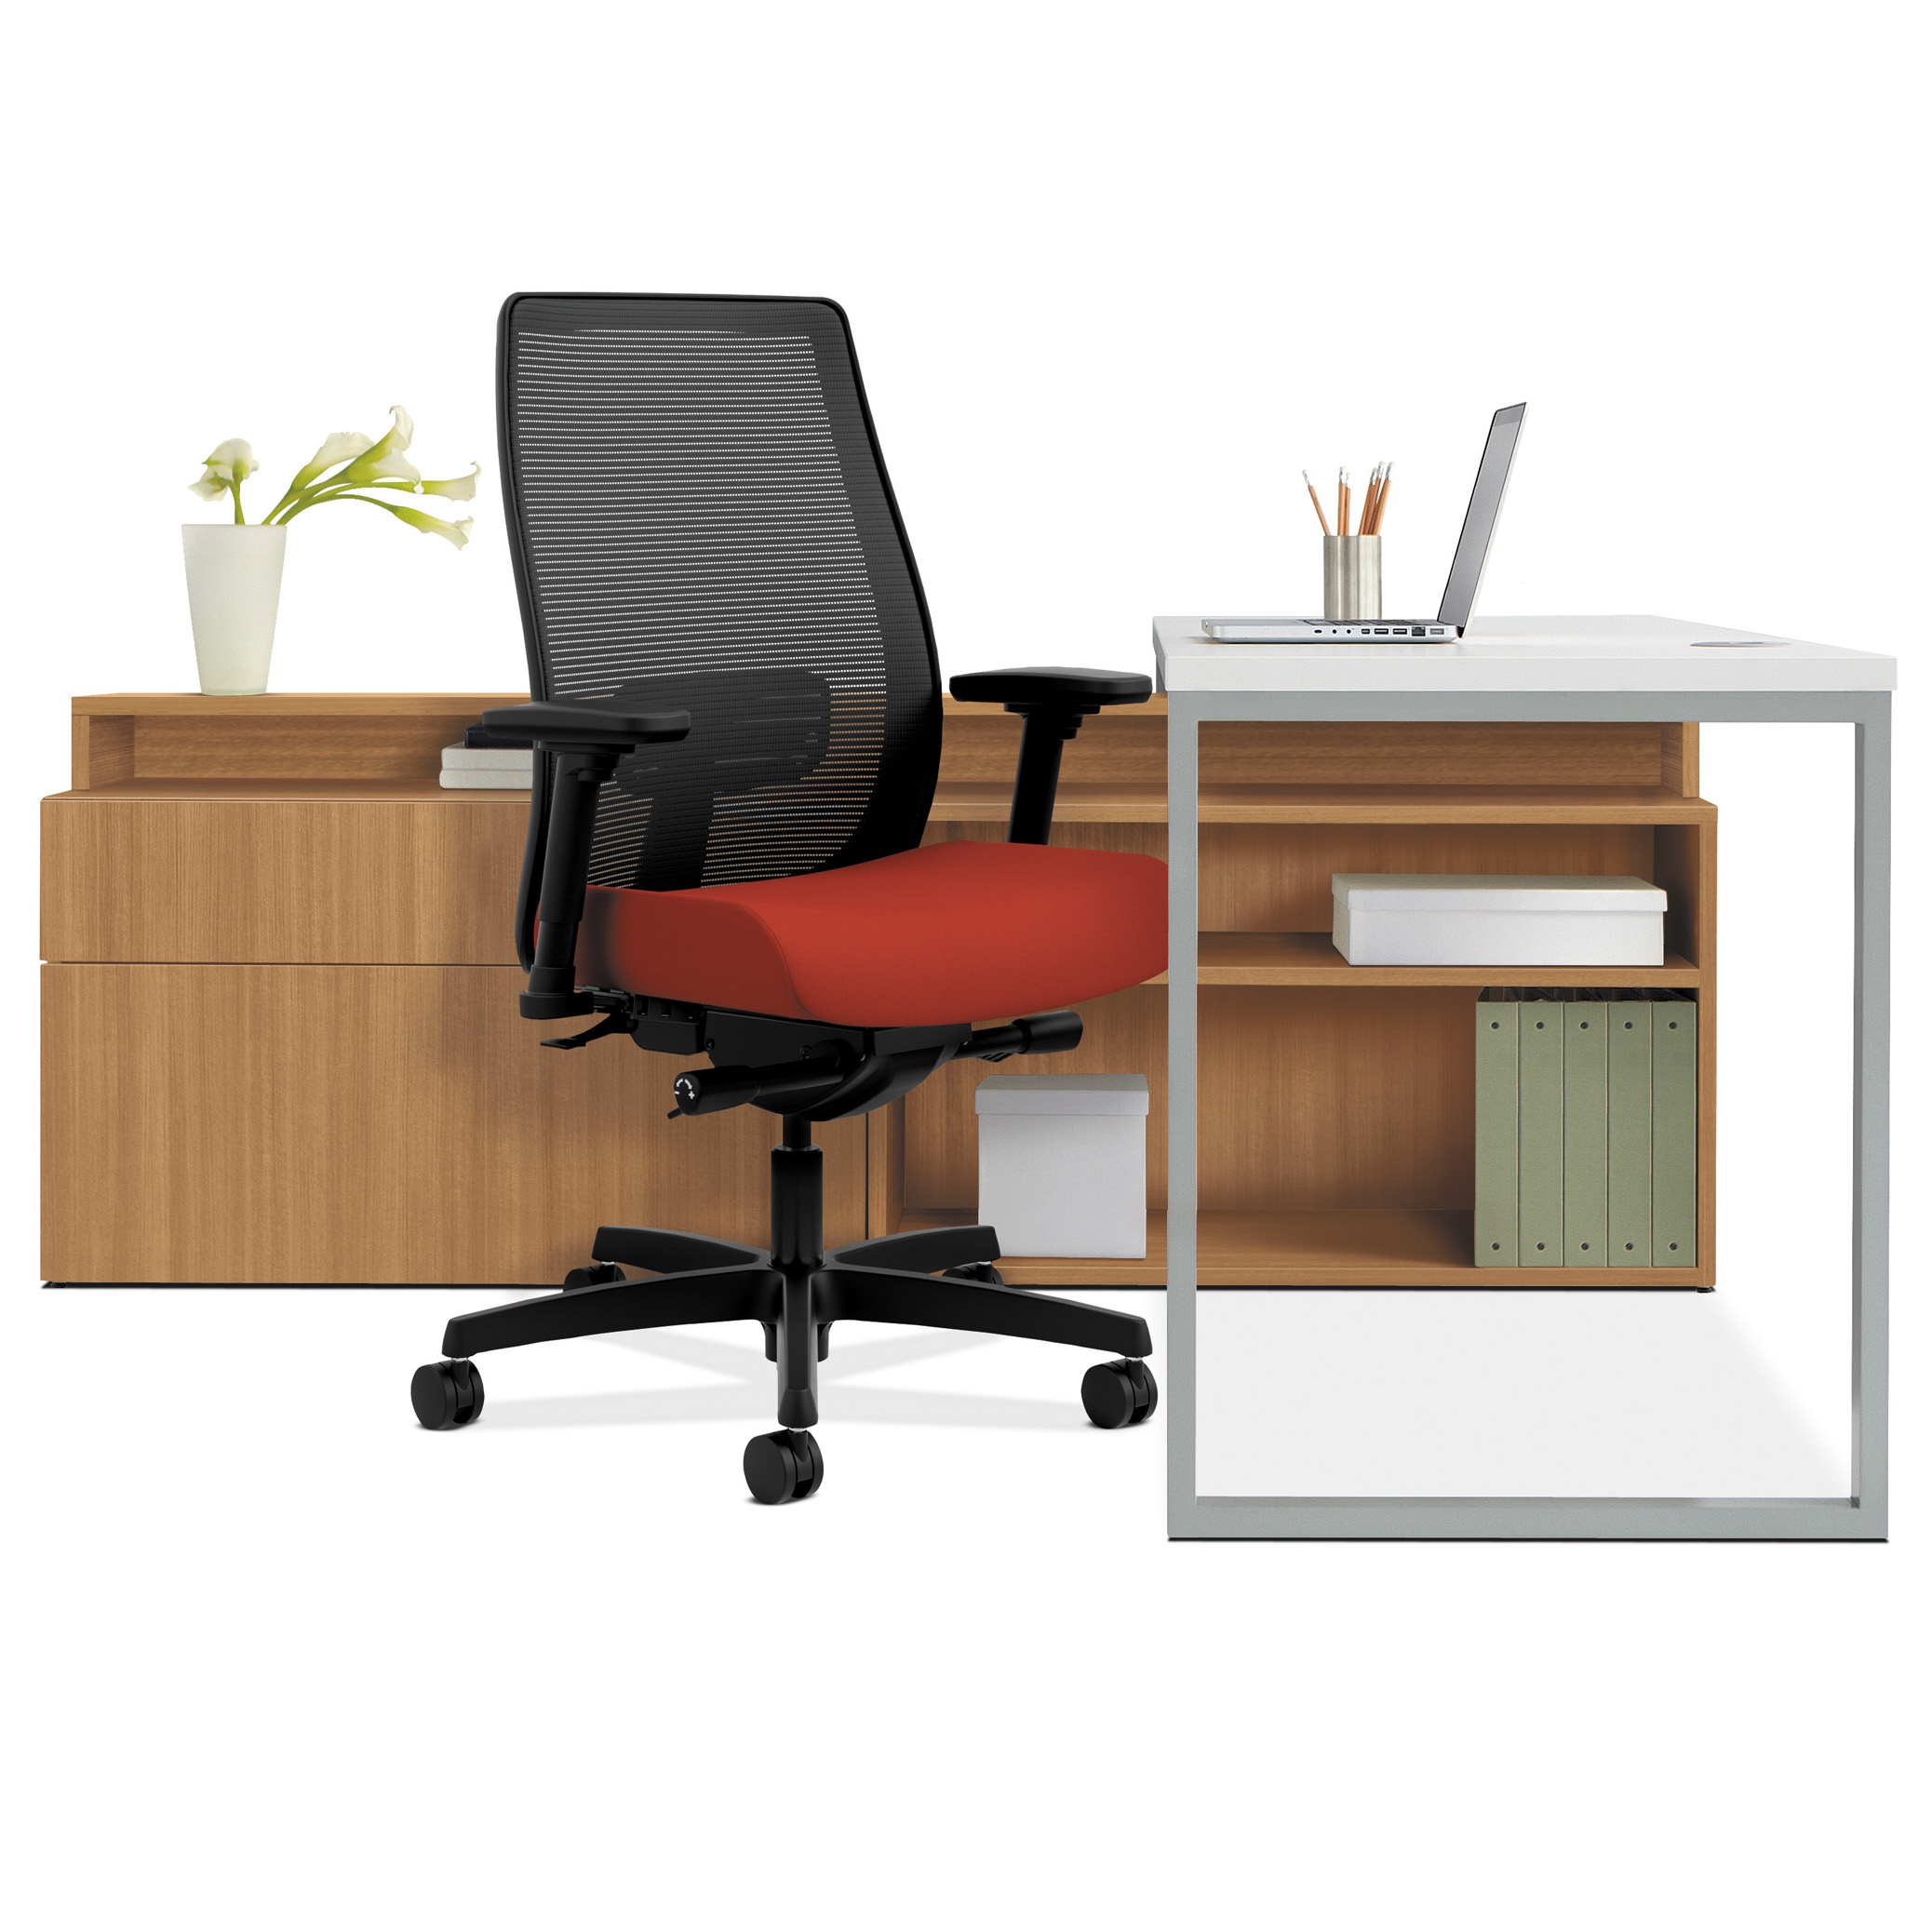 Voi Office Furniture Chicago New Rental Used Office Furniture Rental Albuquerque